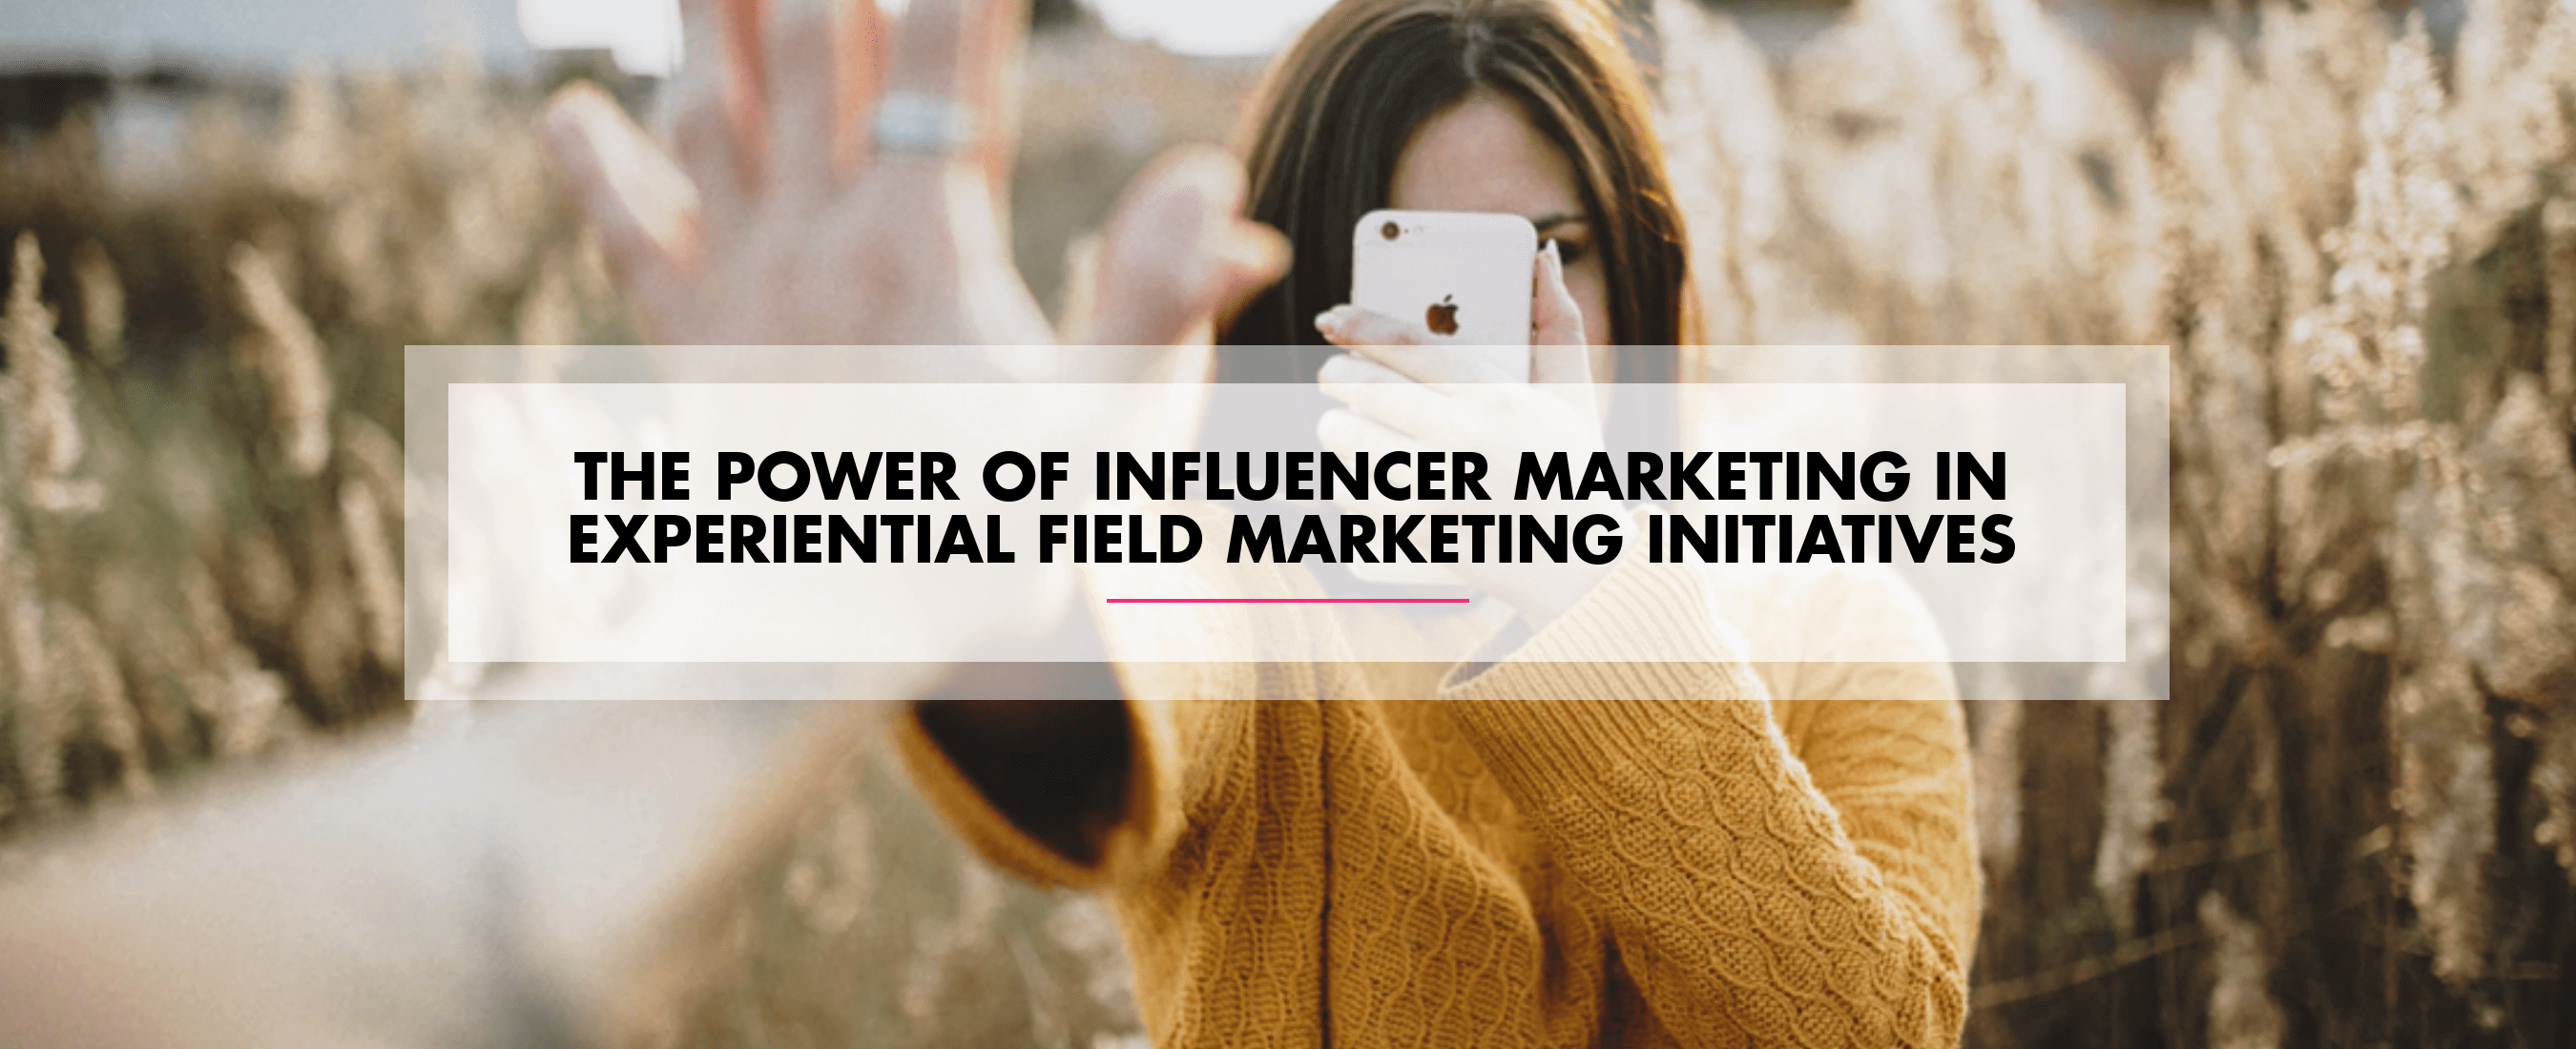 The Power of Influencer Marketing in Experiential Field Marketing Initiatives